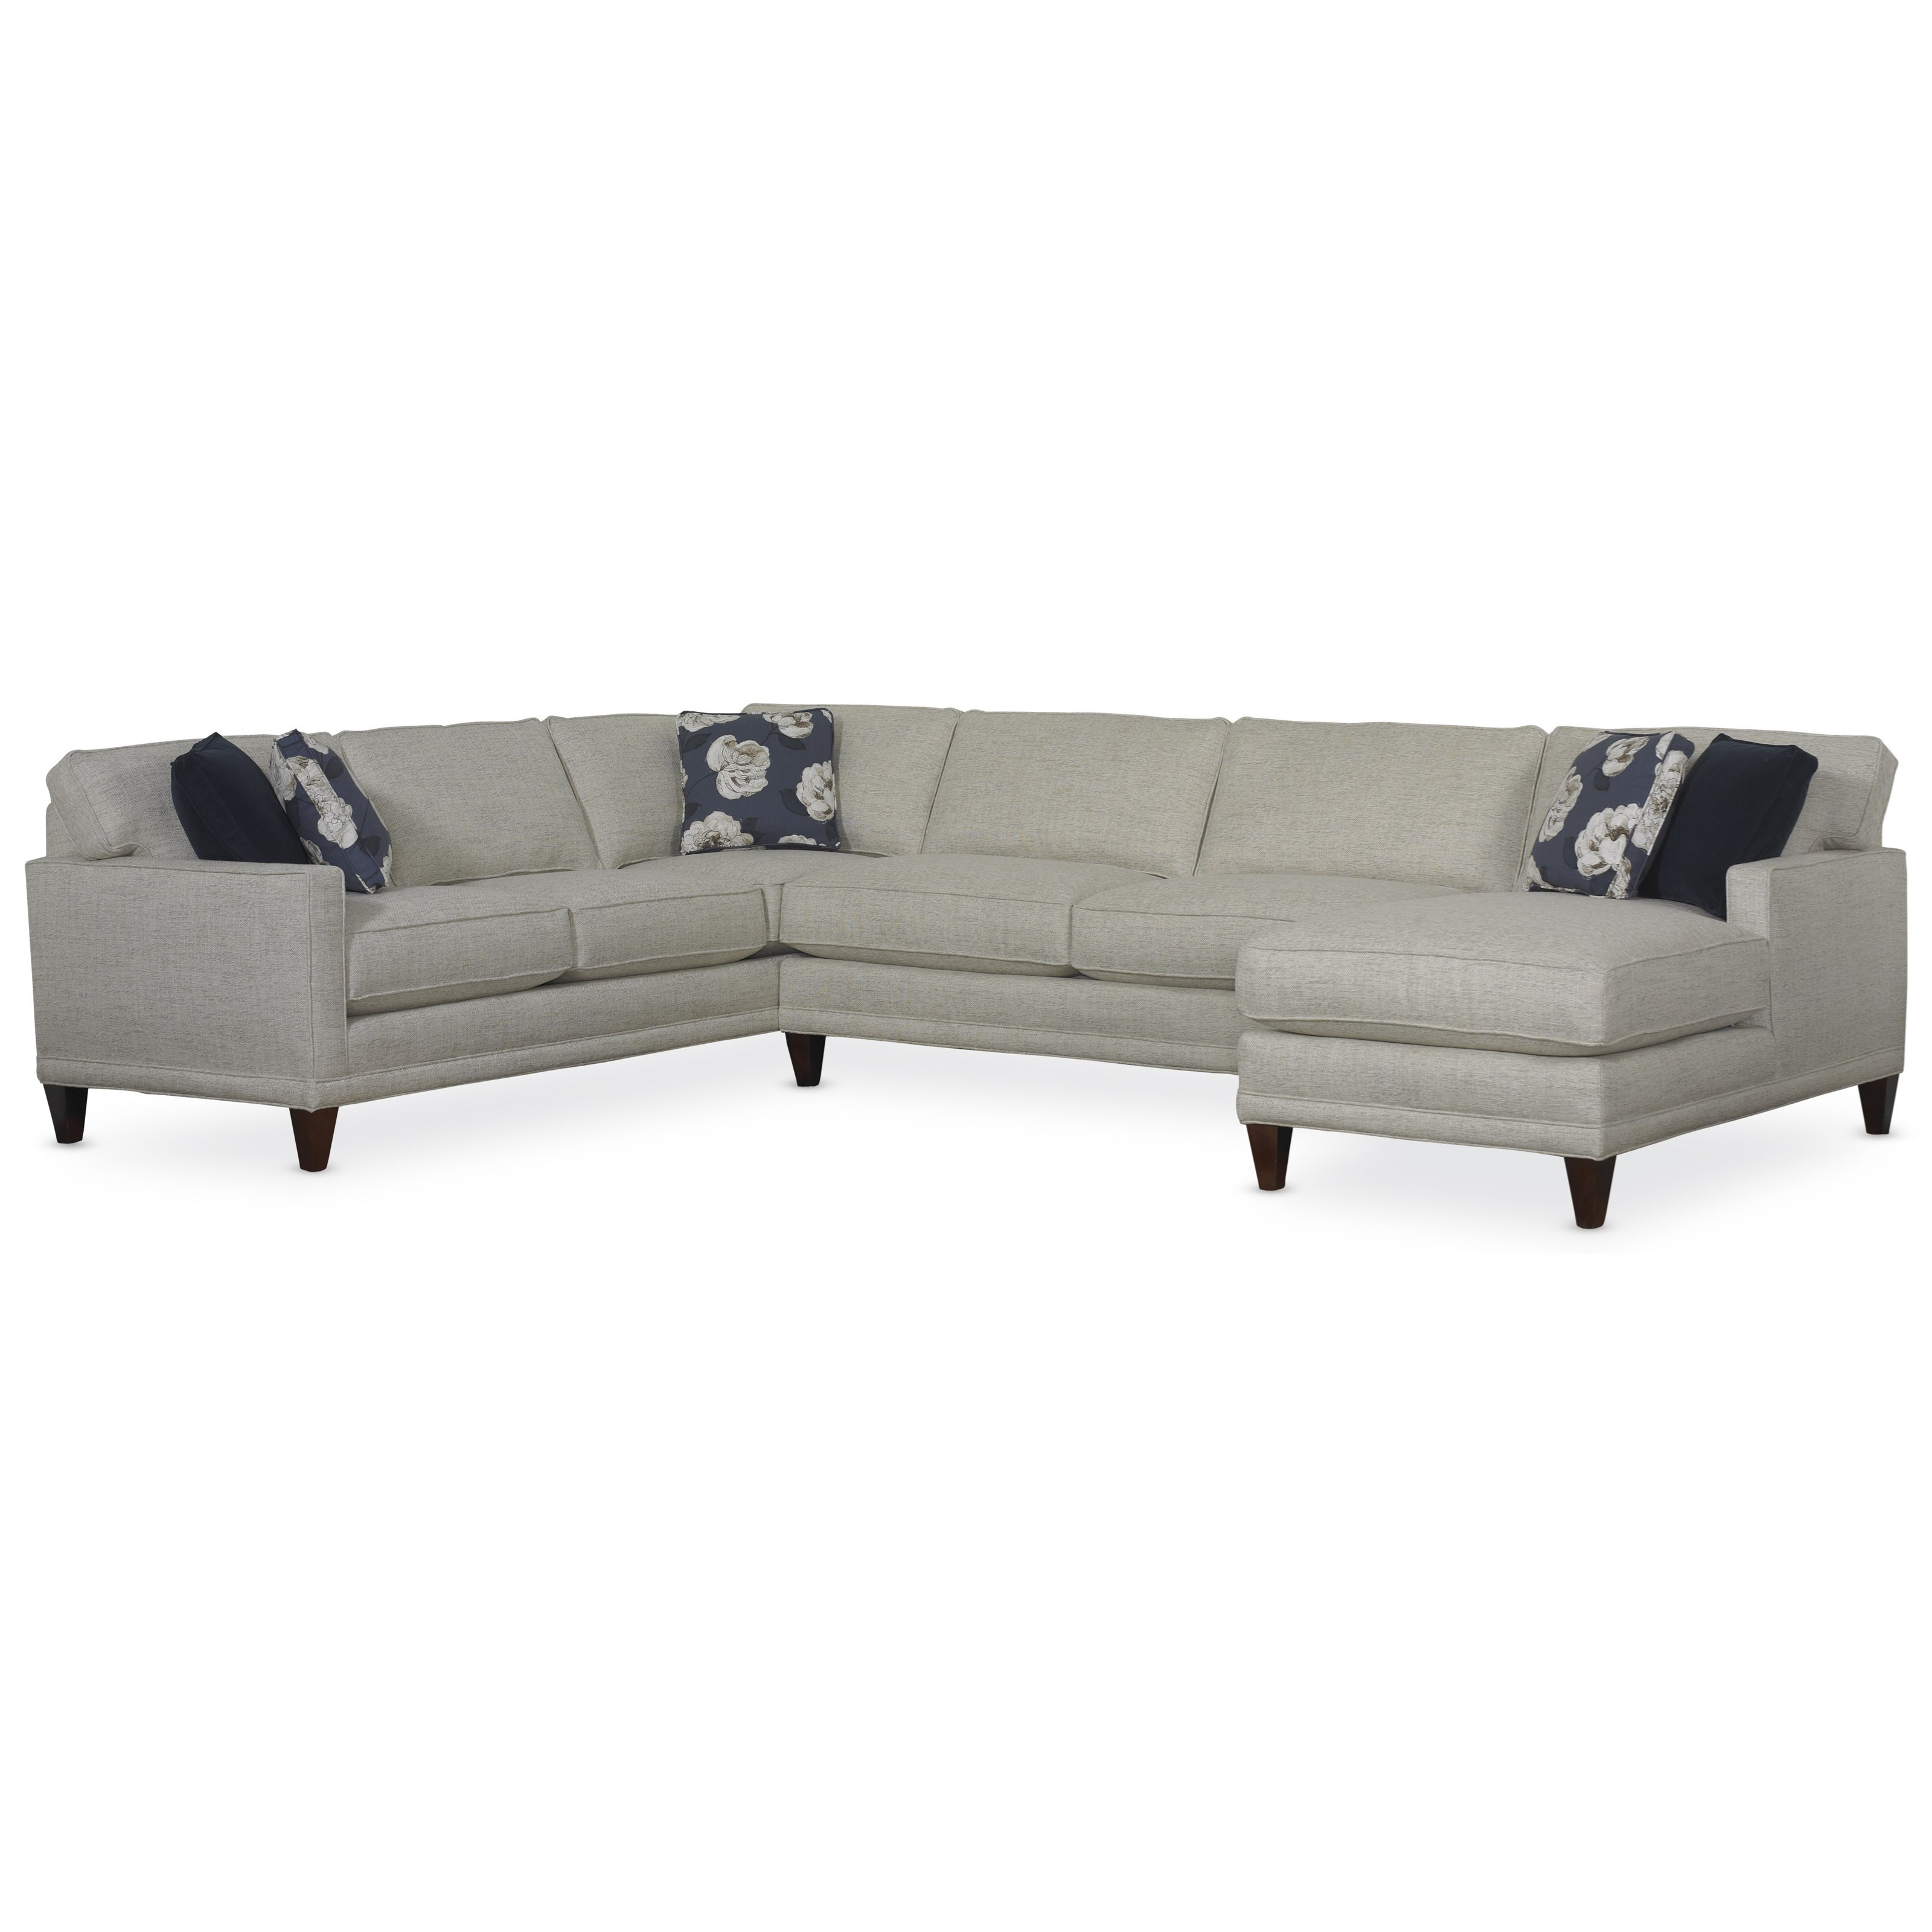 Rowe Townsend Casual Sectional Sofa Group Hudson s Furniture